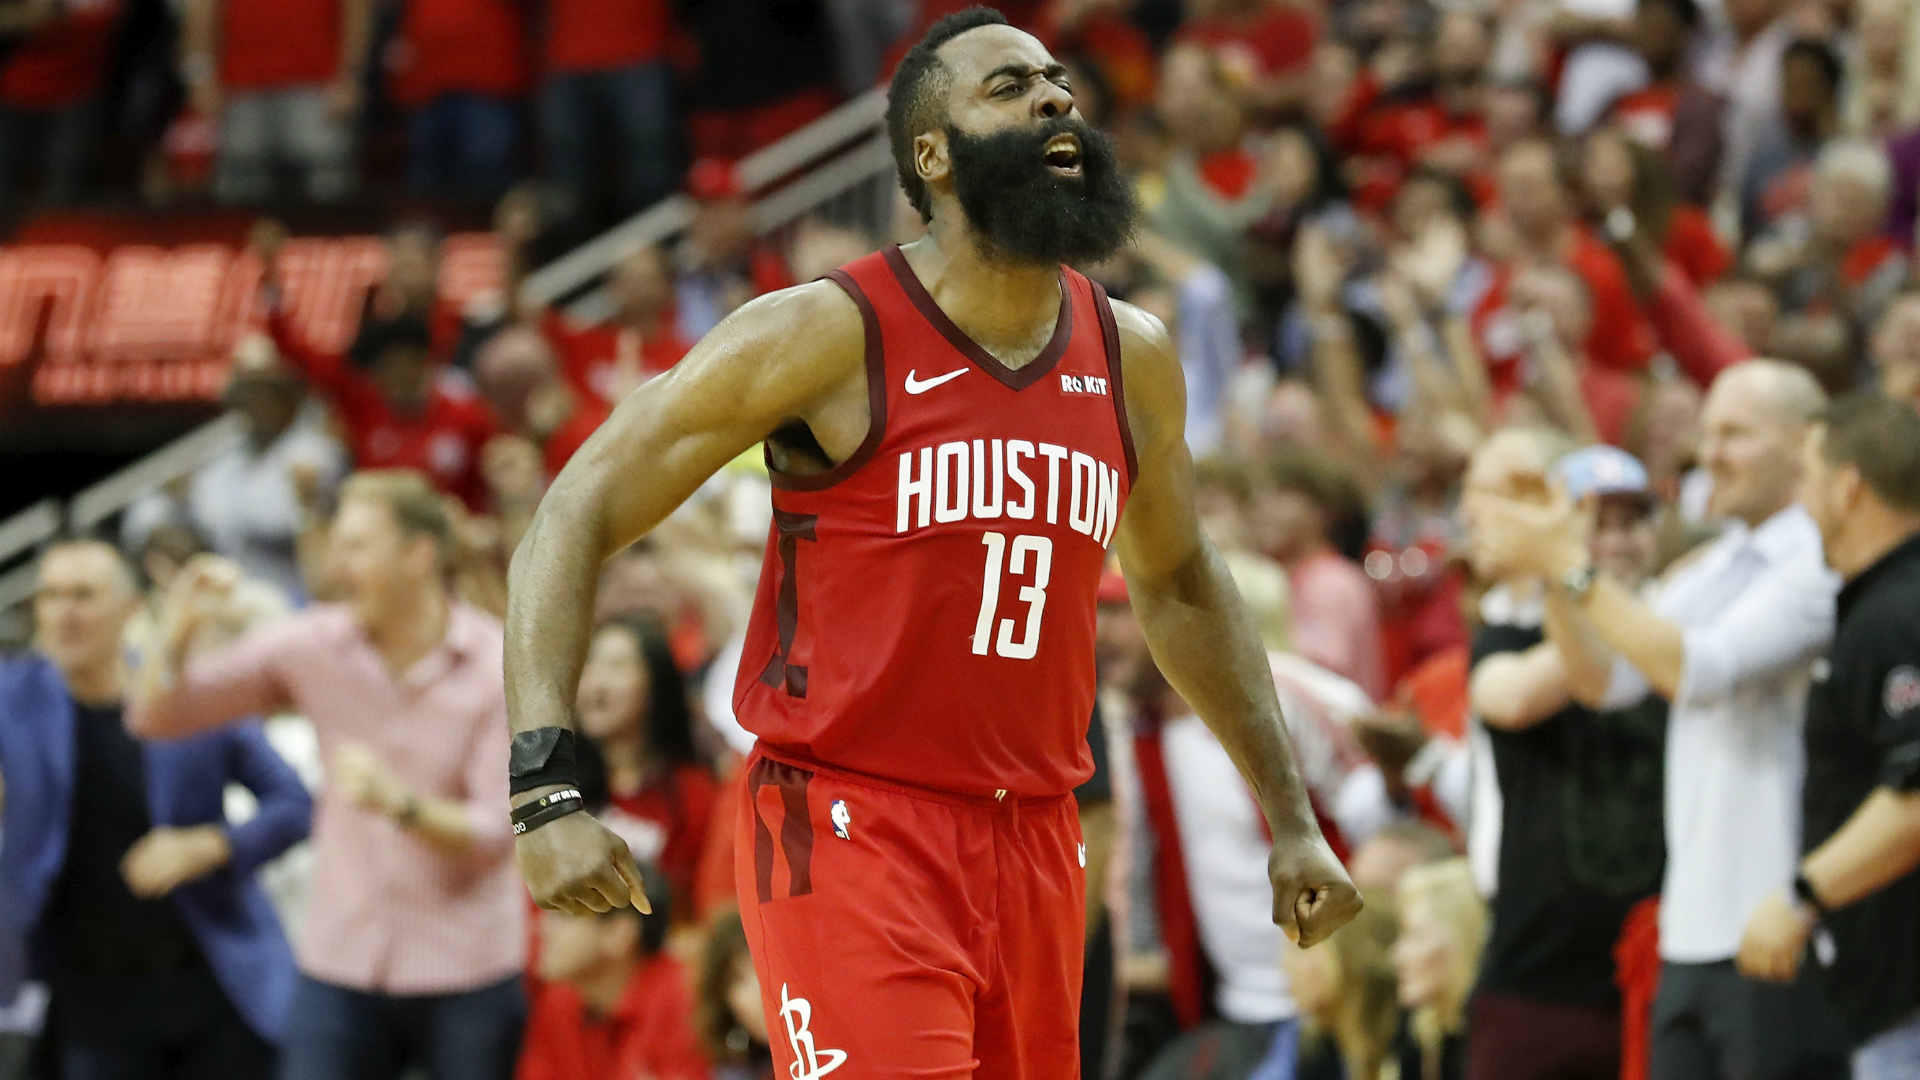 Harden scores 49 points for Rockets